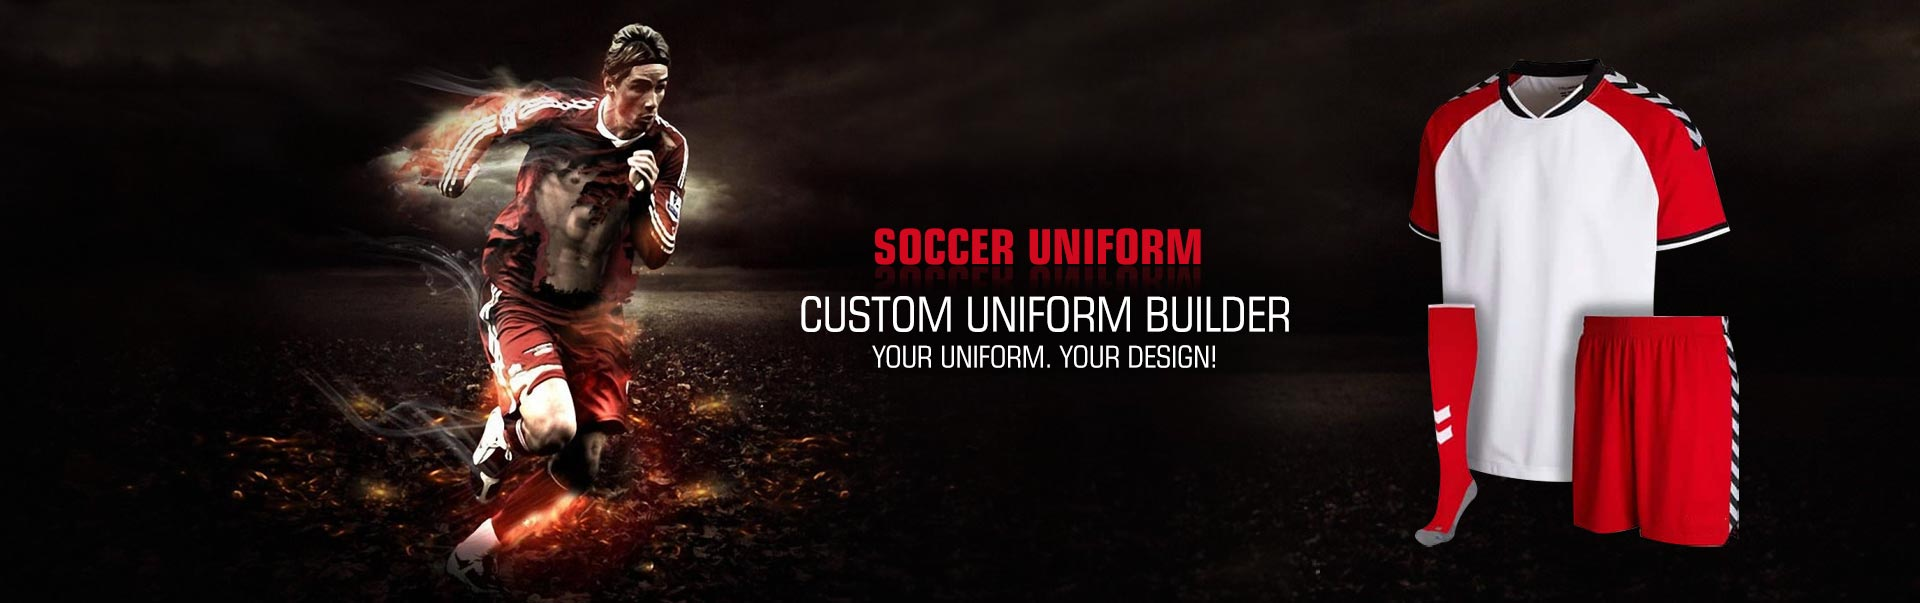 Soccer Uniform Wholesaler, Suppliers in Milton